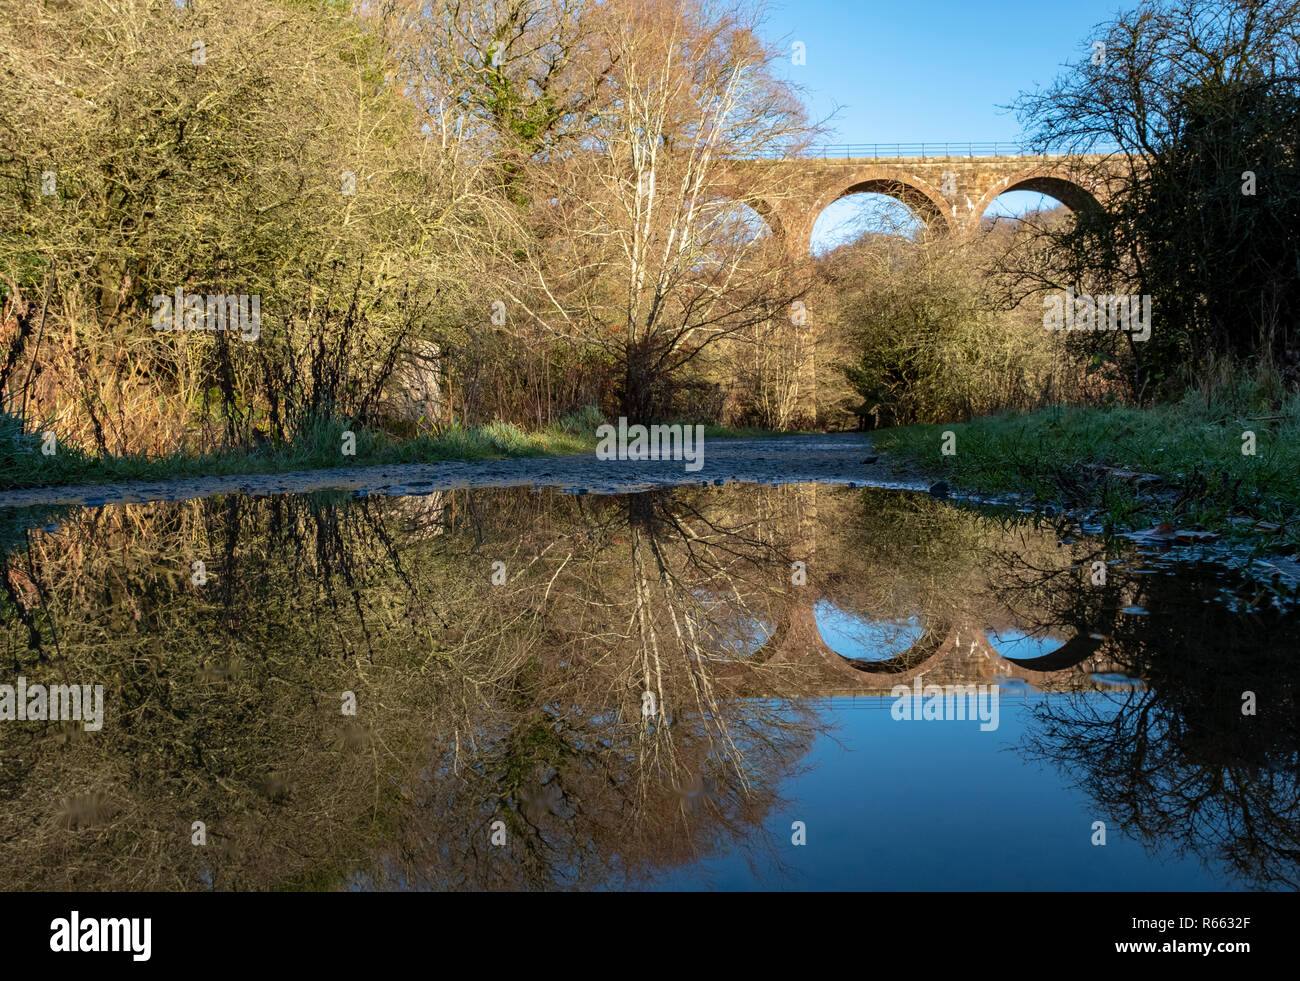 The Camps Railway viaduct, Almondell and Calderwood country park, West Lothian. Stock Photo